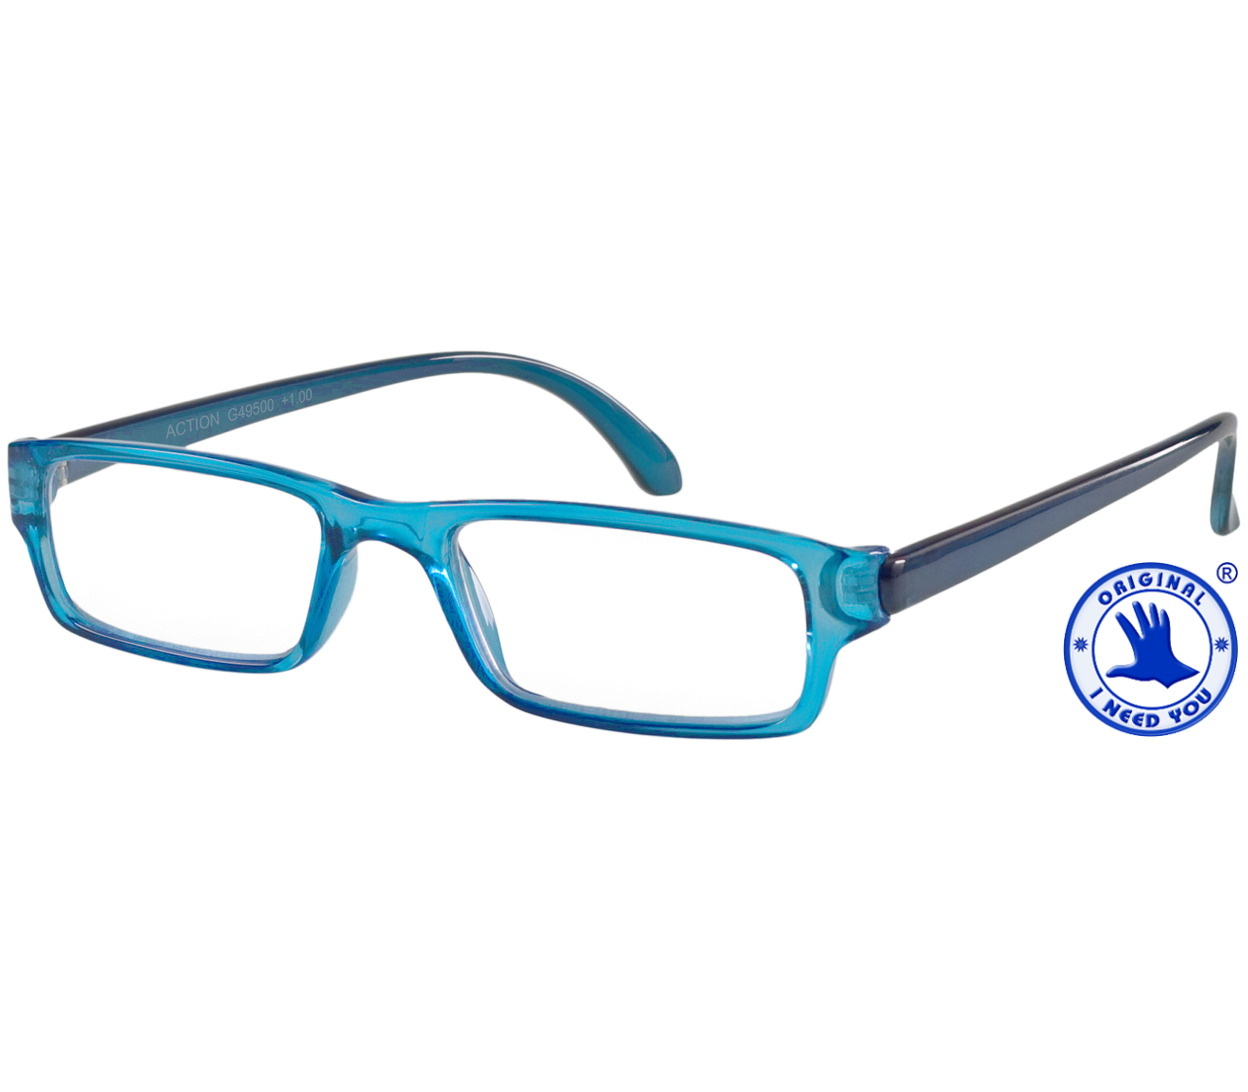 Main Image (Angle) - Action (Blue) Reading Glasses